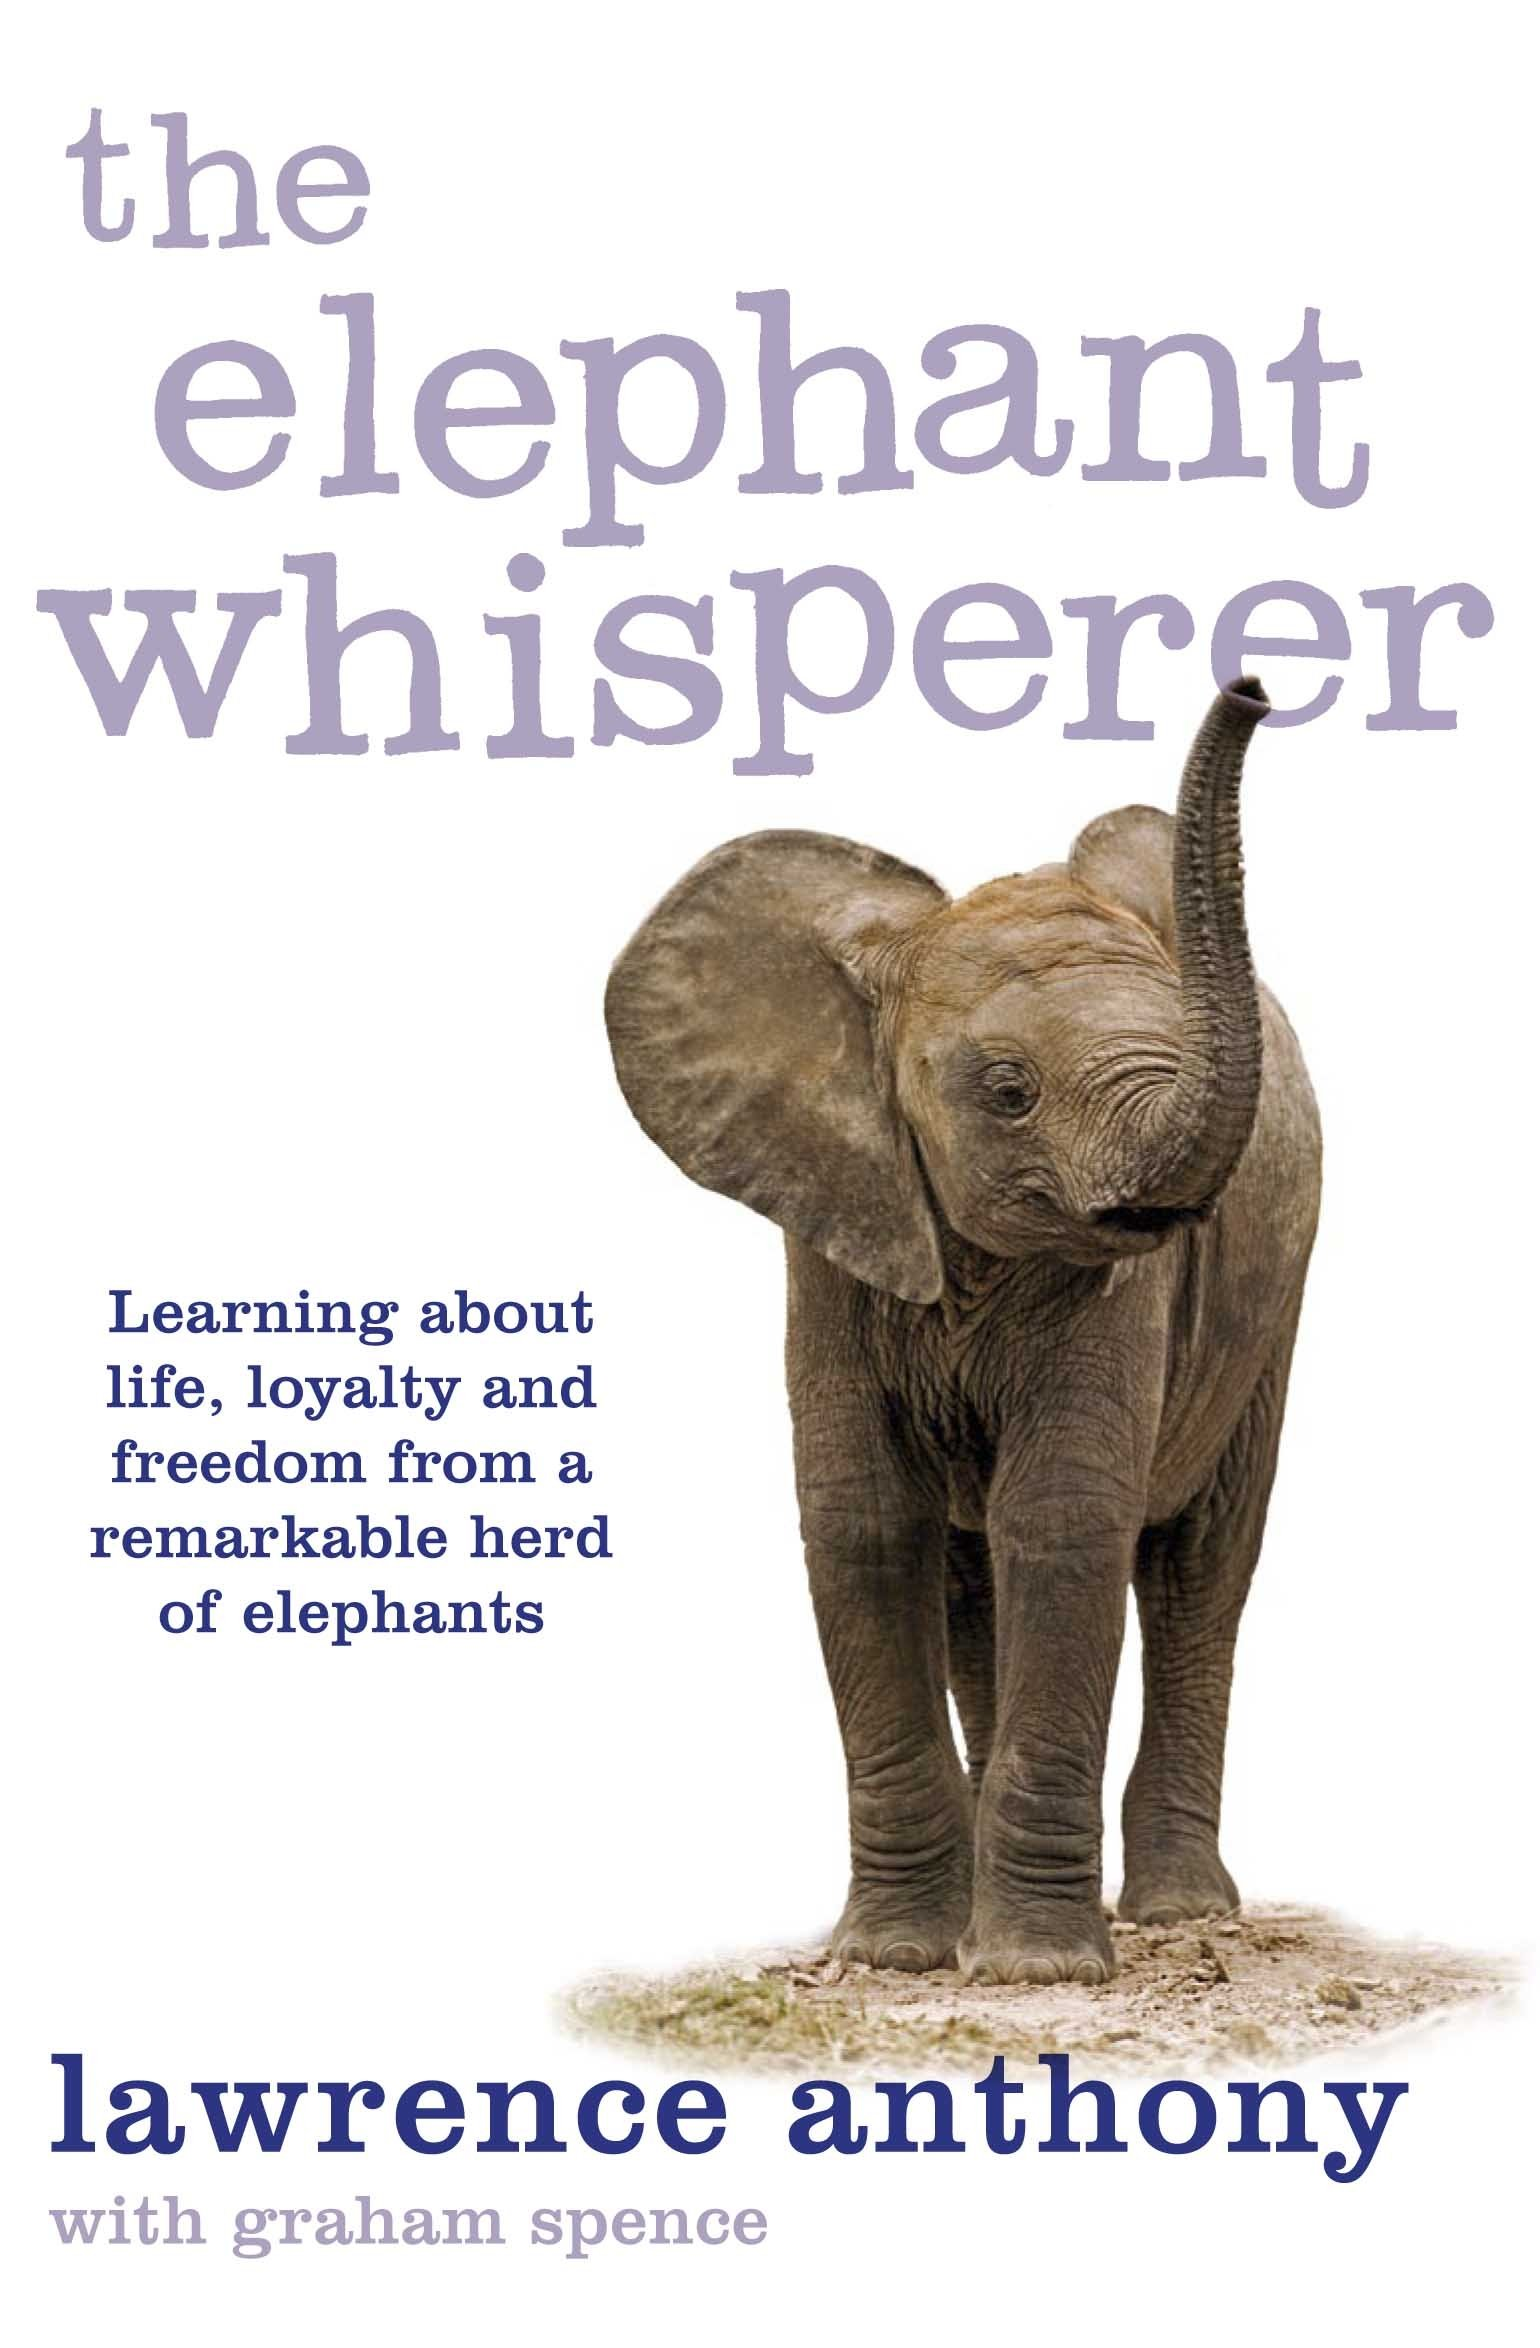 The Elephant Whisperer: Learning About Life, Loyalty And Freedom From A  Remarkable Herd Of Elephants: Lawrence Anthony: 9780330506687: Amazon:  Books